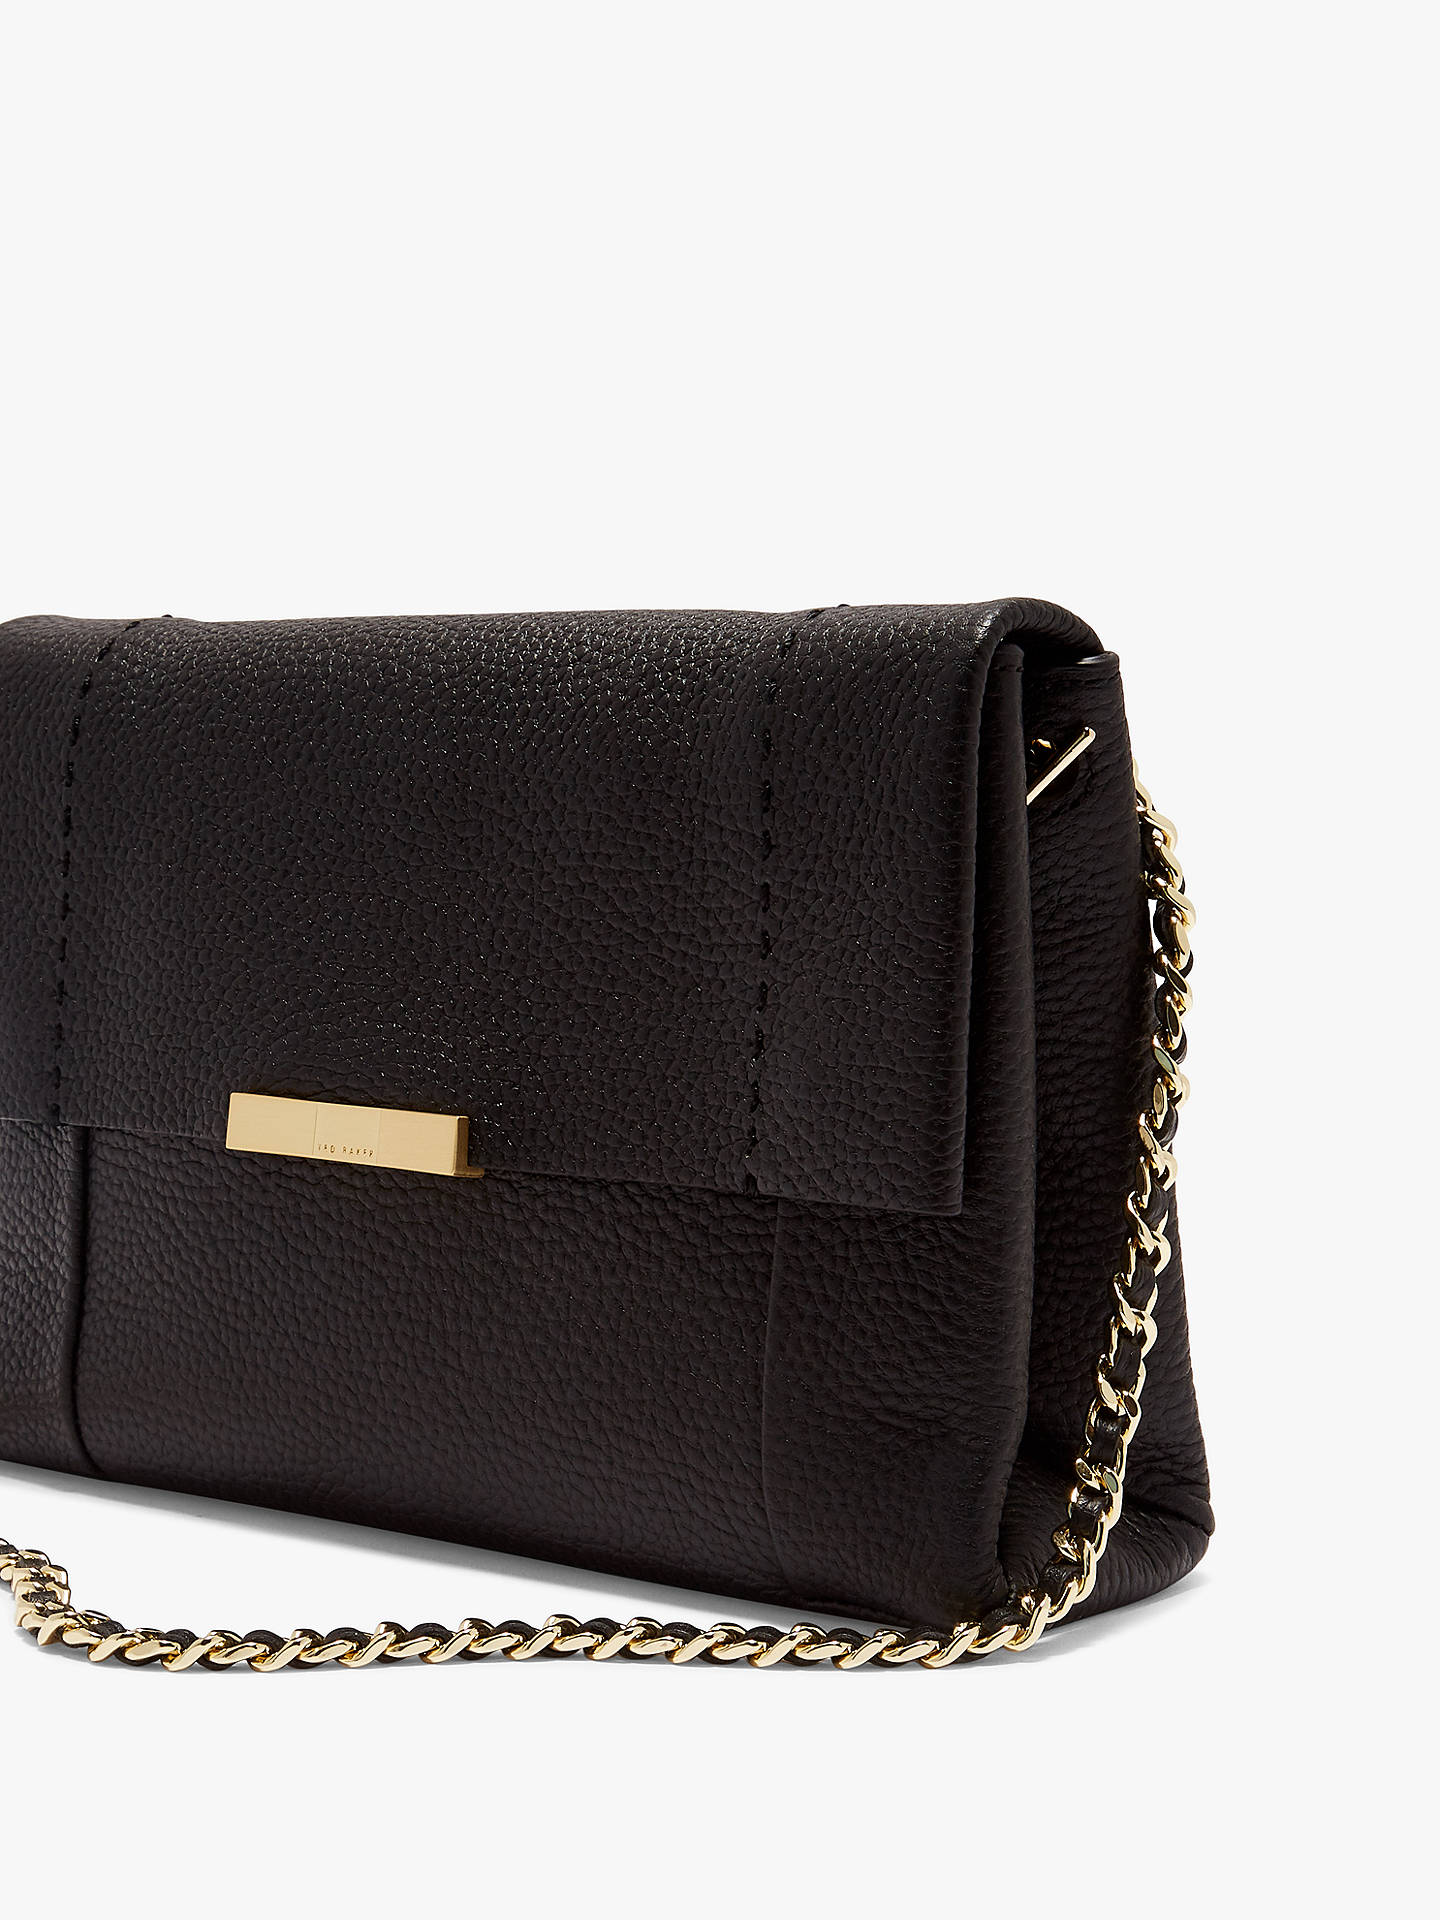 5ea053697631 Ted Baker Clarria Leather Cross Body Bag at John Lewis   Partners